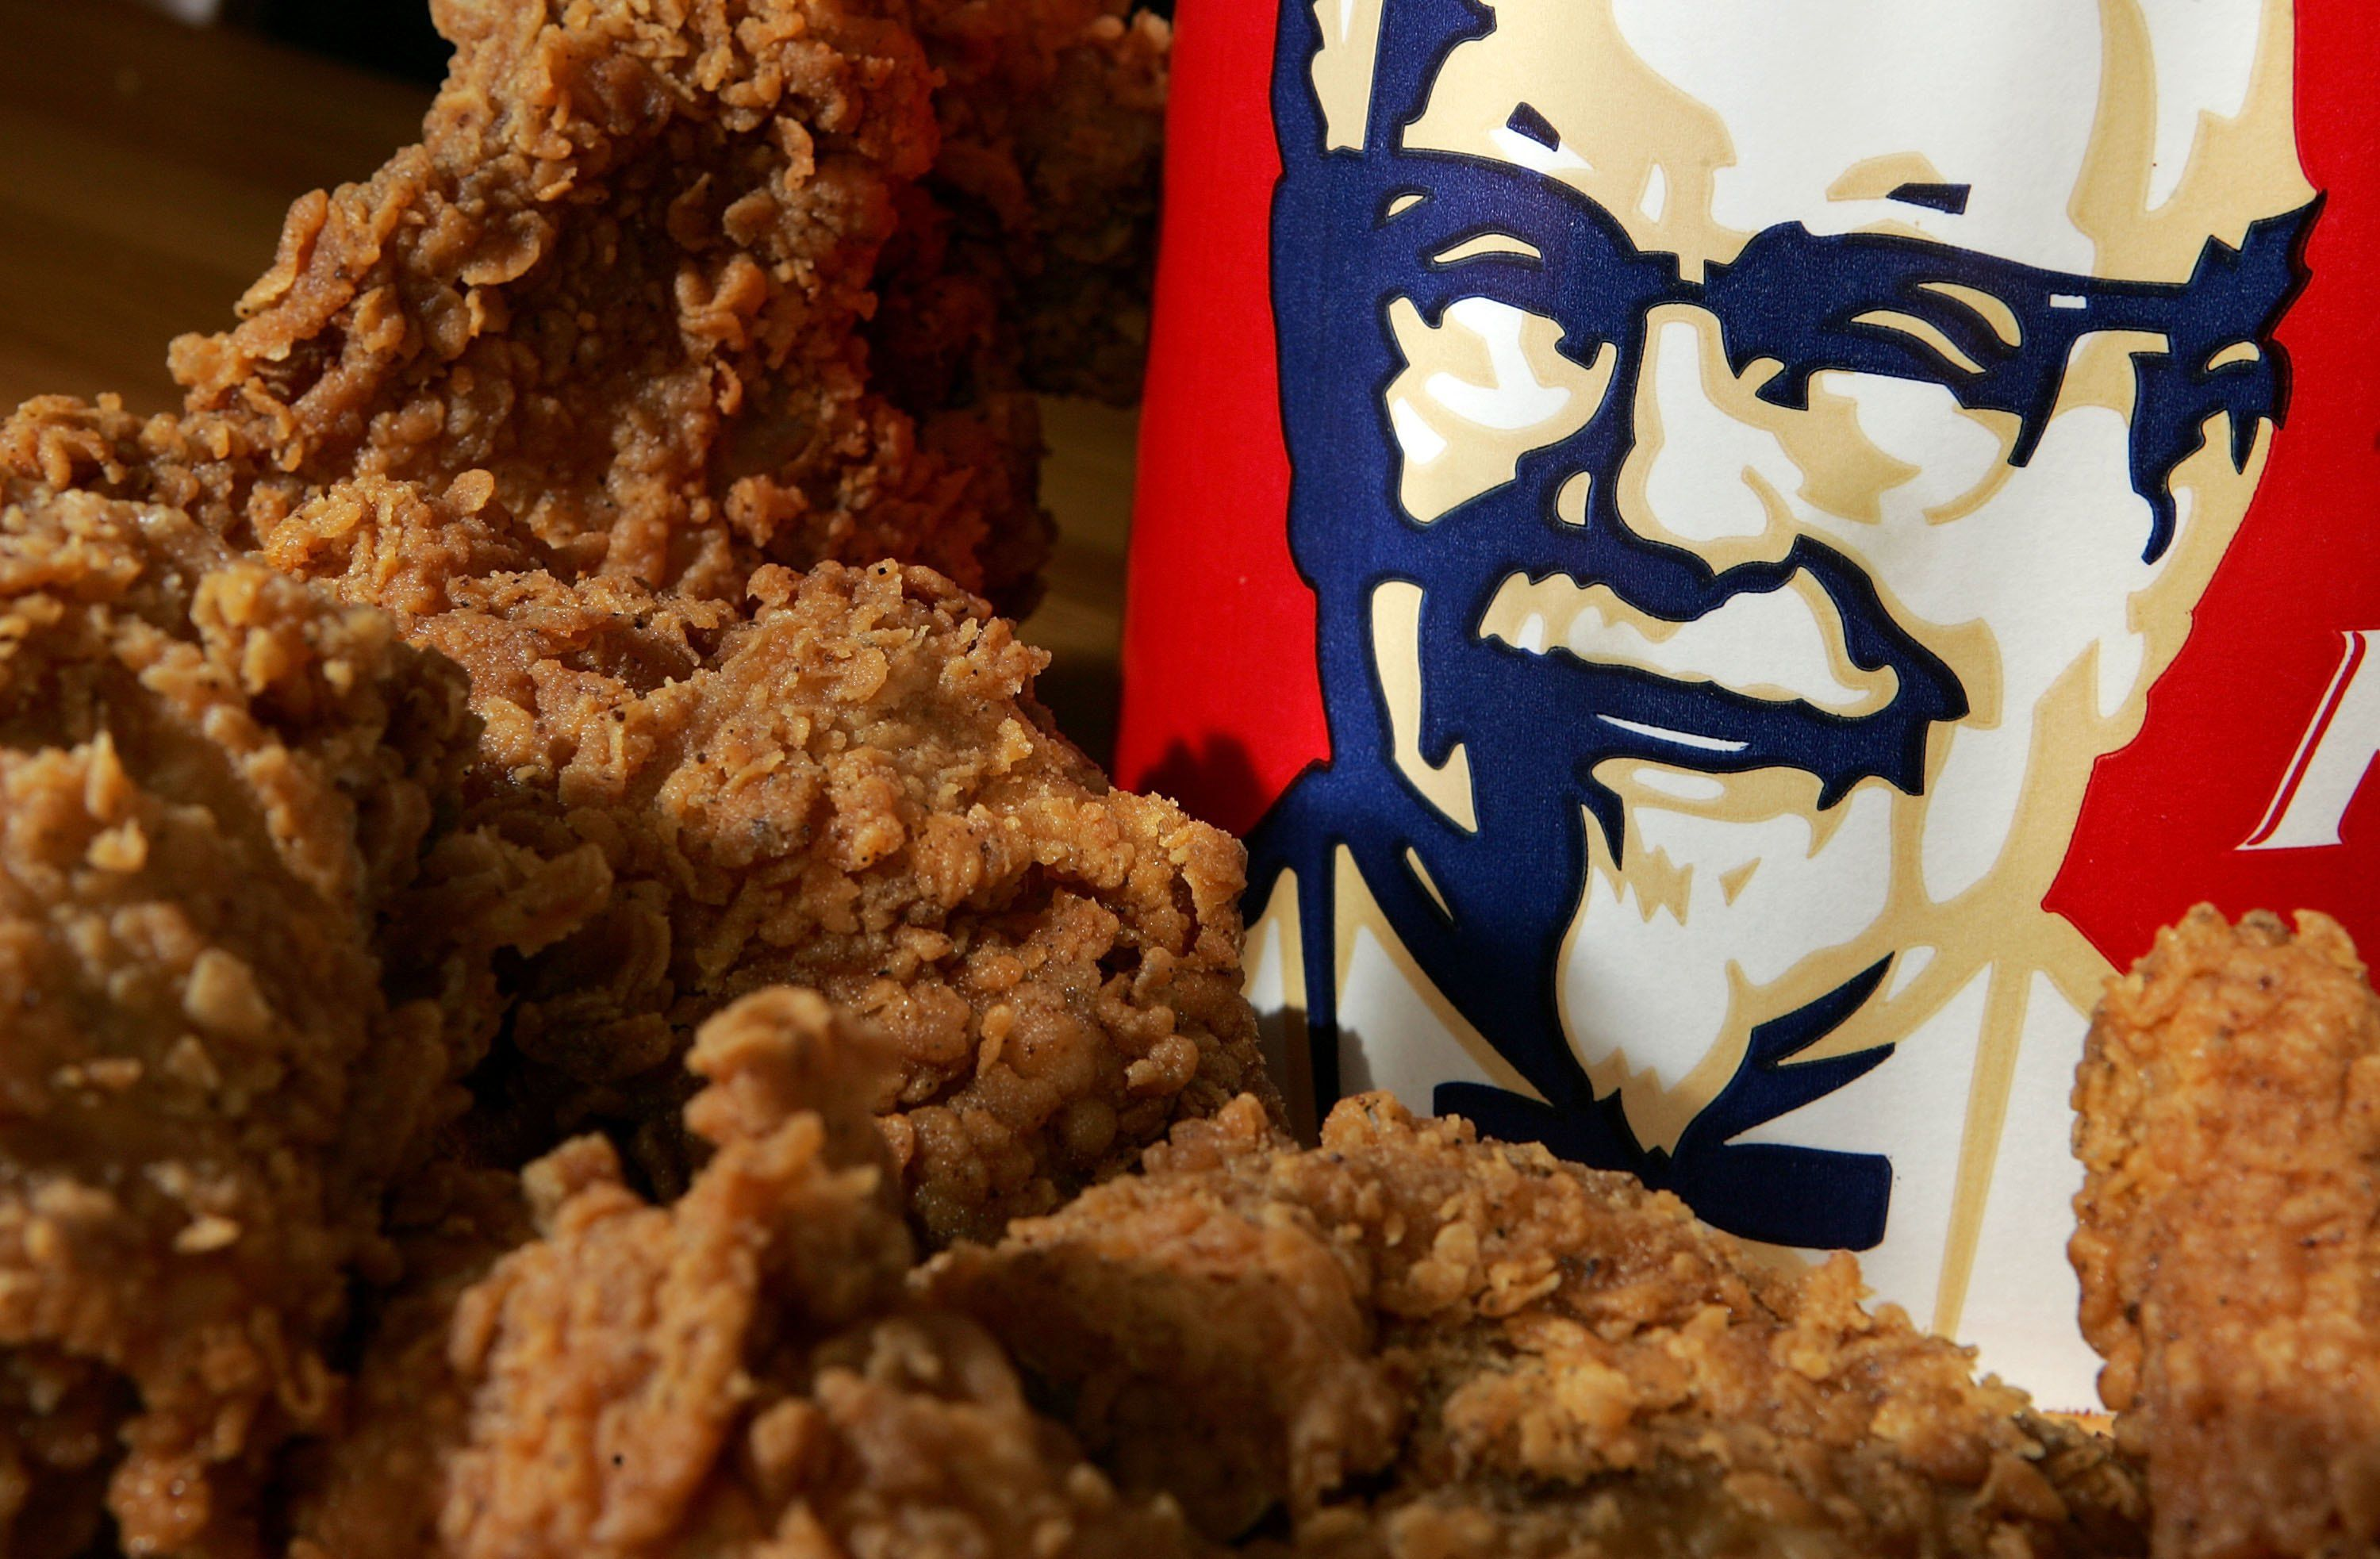 Kfc Nutrition Facts Healthy Menu Choices For Every Diet